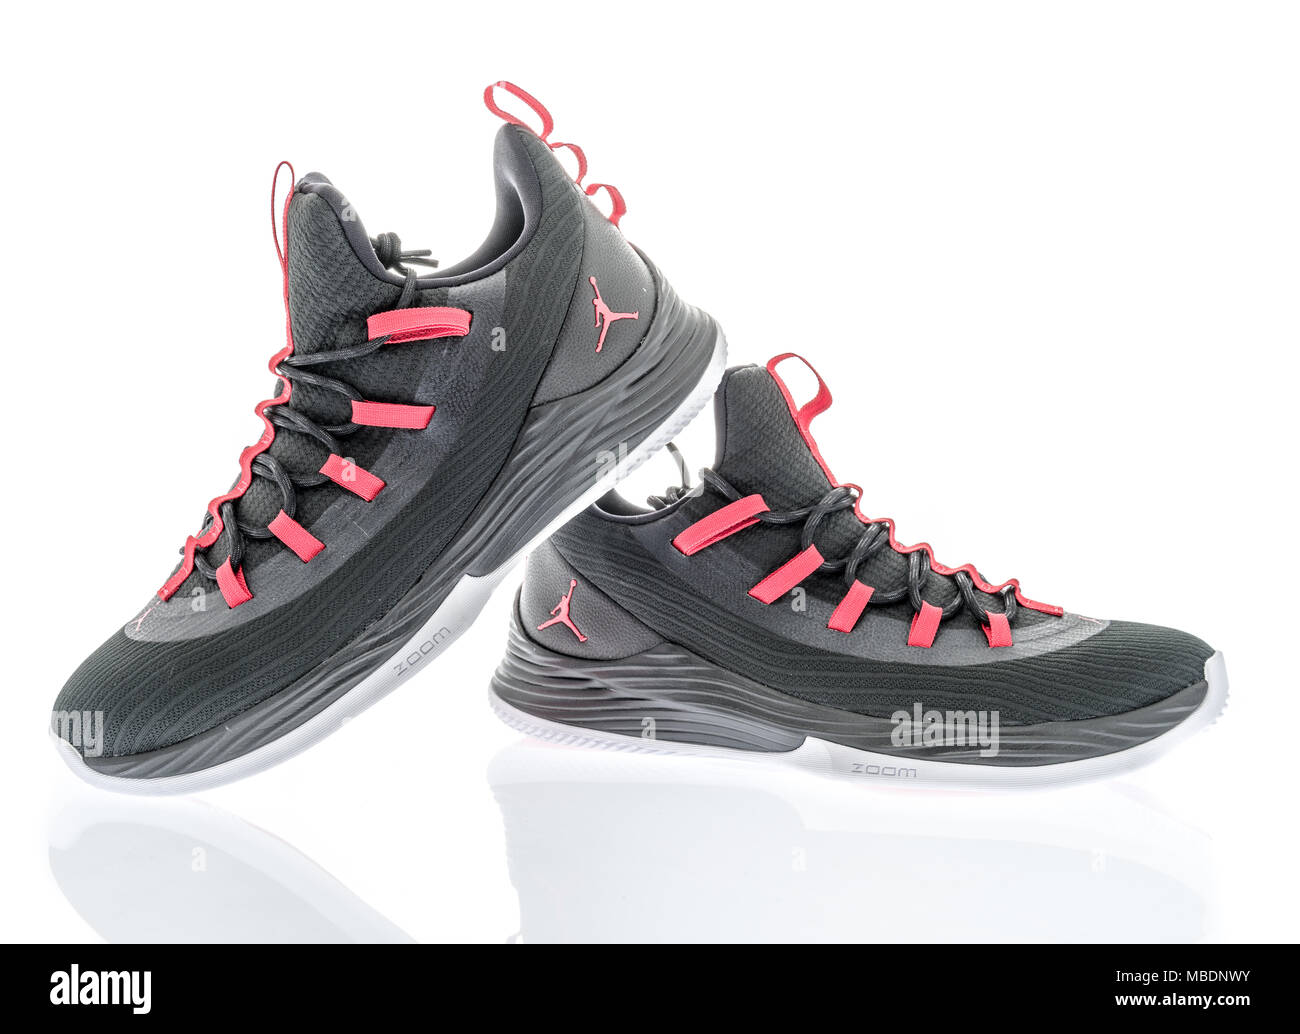 Winneconne, WI - 8 April 2018: A pair of Michael Jordon Nike shoes on